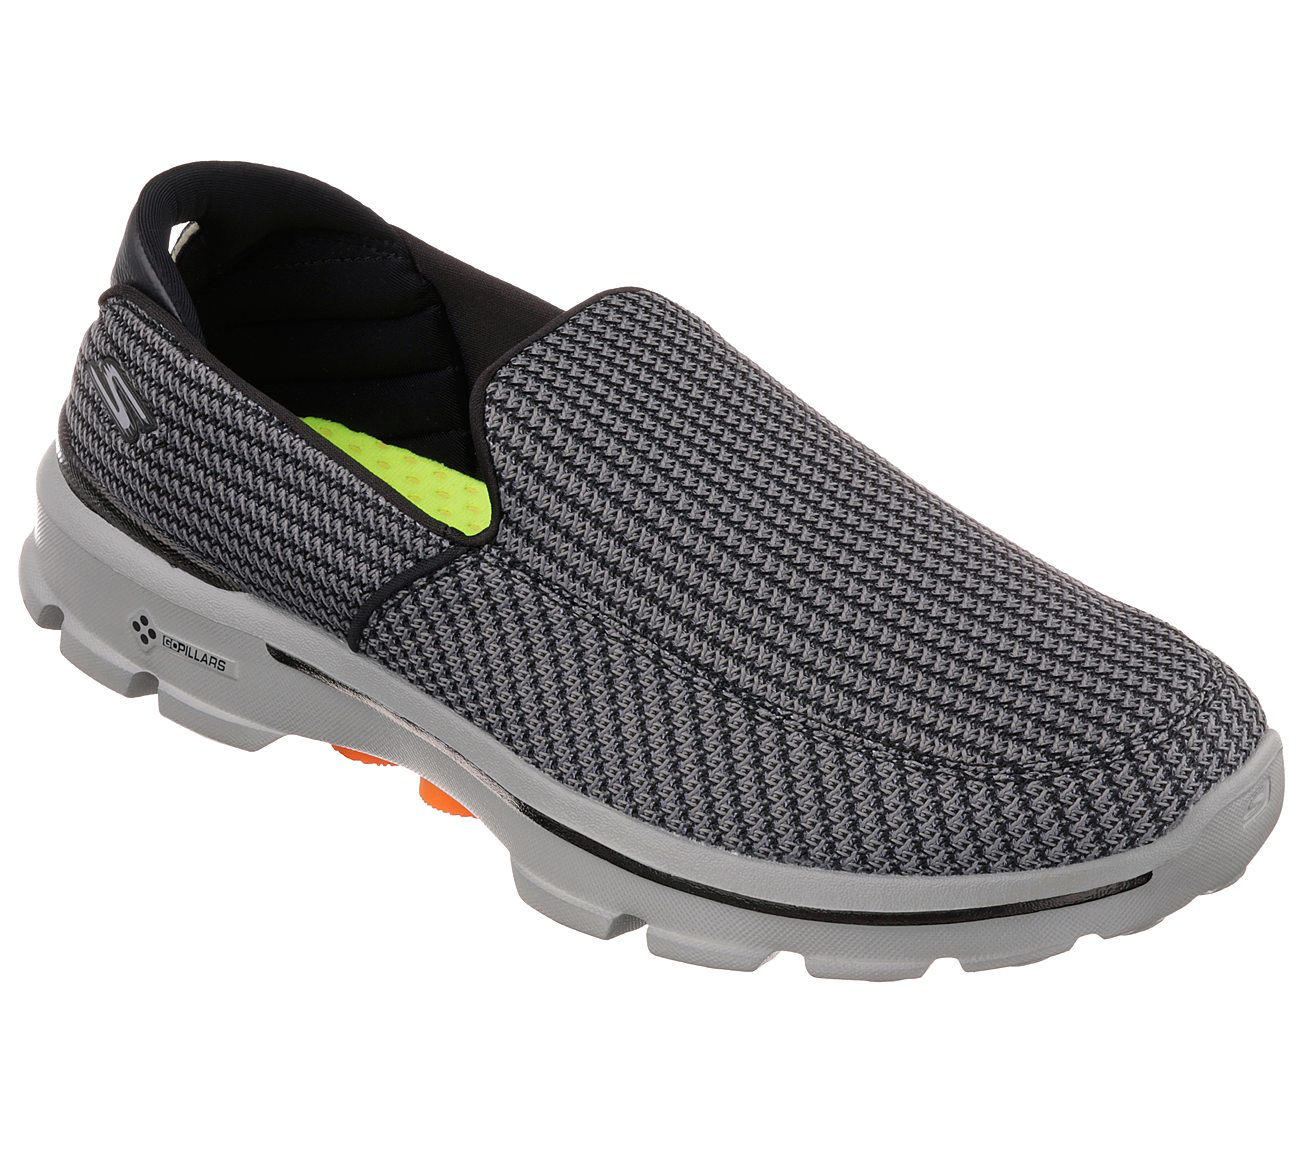 Buy SKECHERS Skechers GOwalk 3 Skechers Performance Shoes only  75.00 d10eb0a7c4